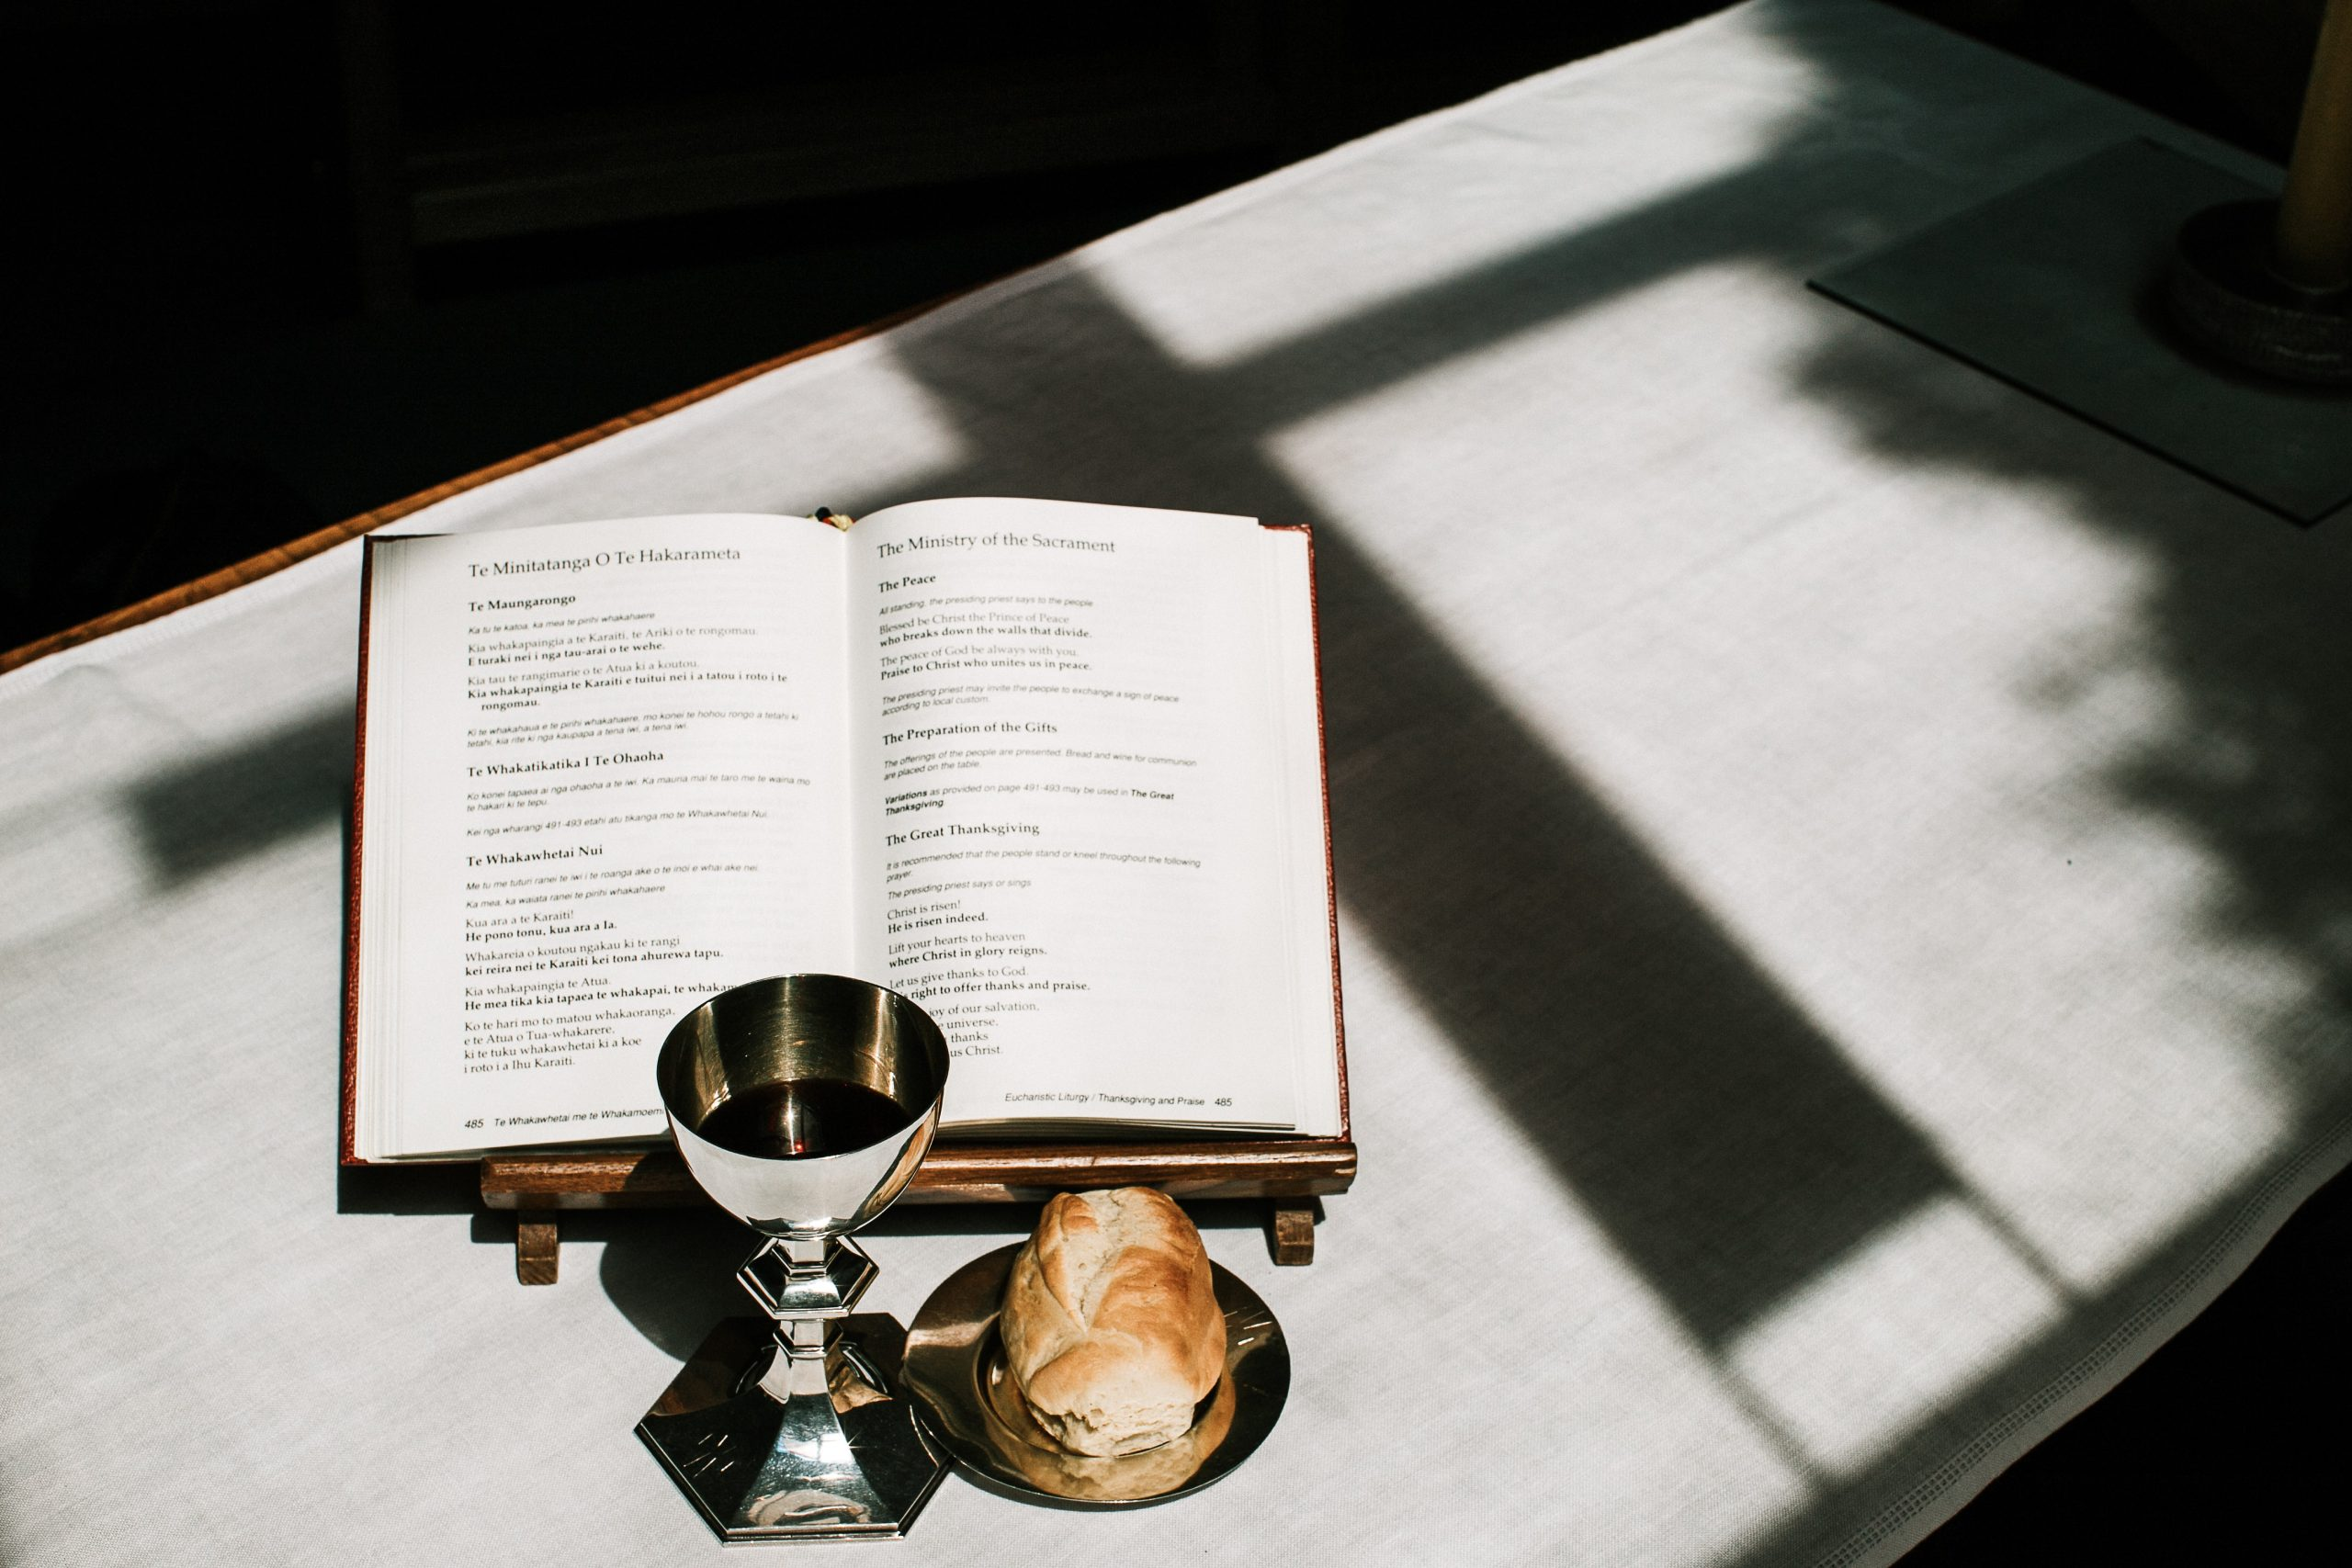 A loaf of bread and silver goblet sit next to a book opened to a communion liturgy. A shadow of the cross darkens the table upon which the communion elements are set.